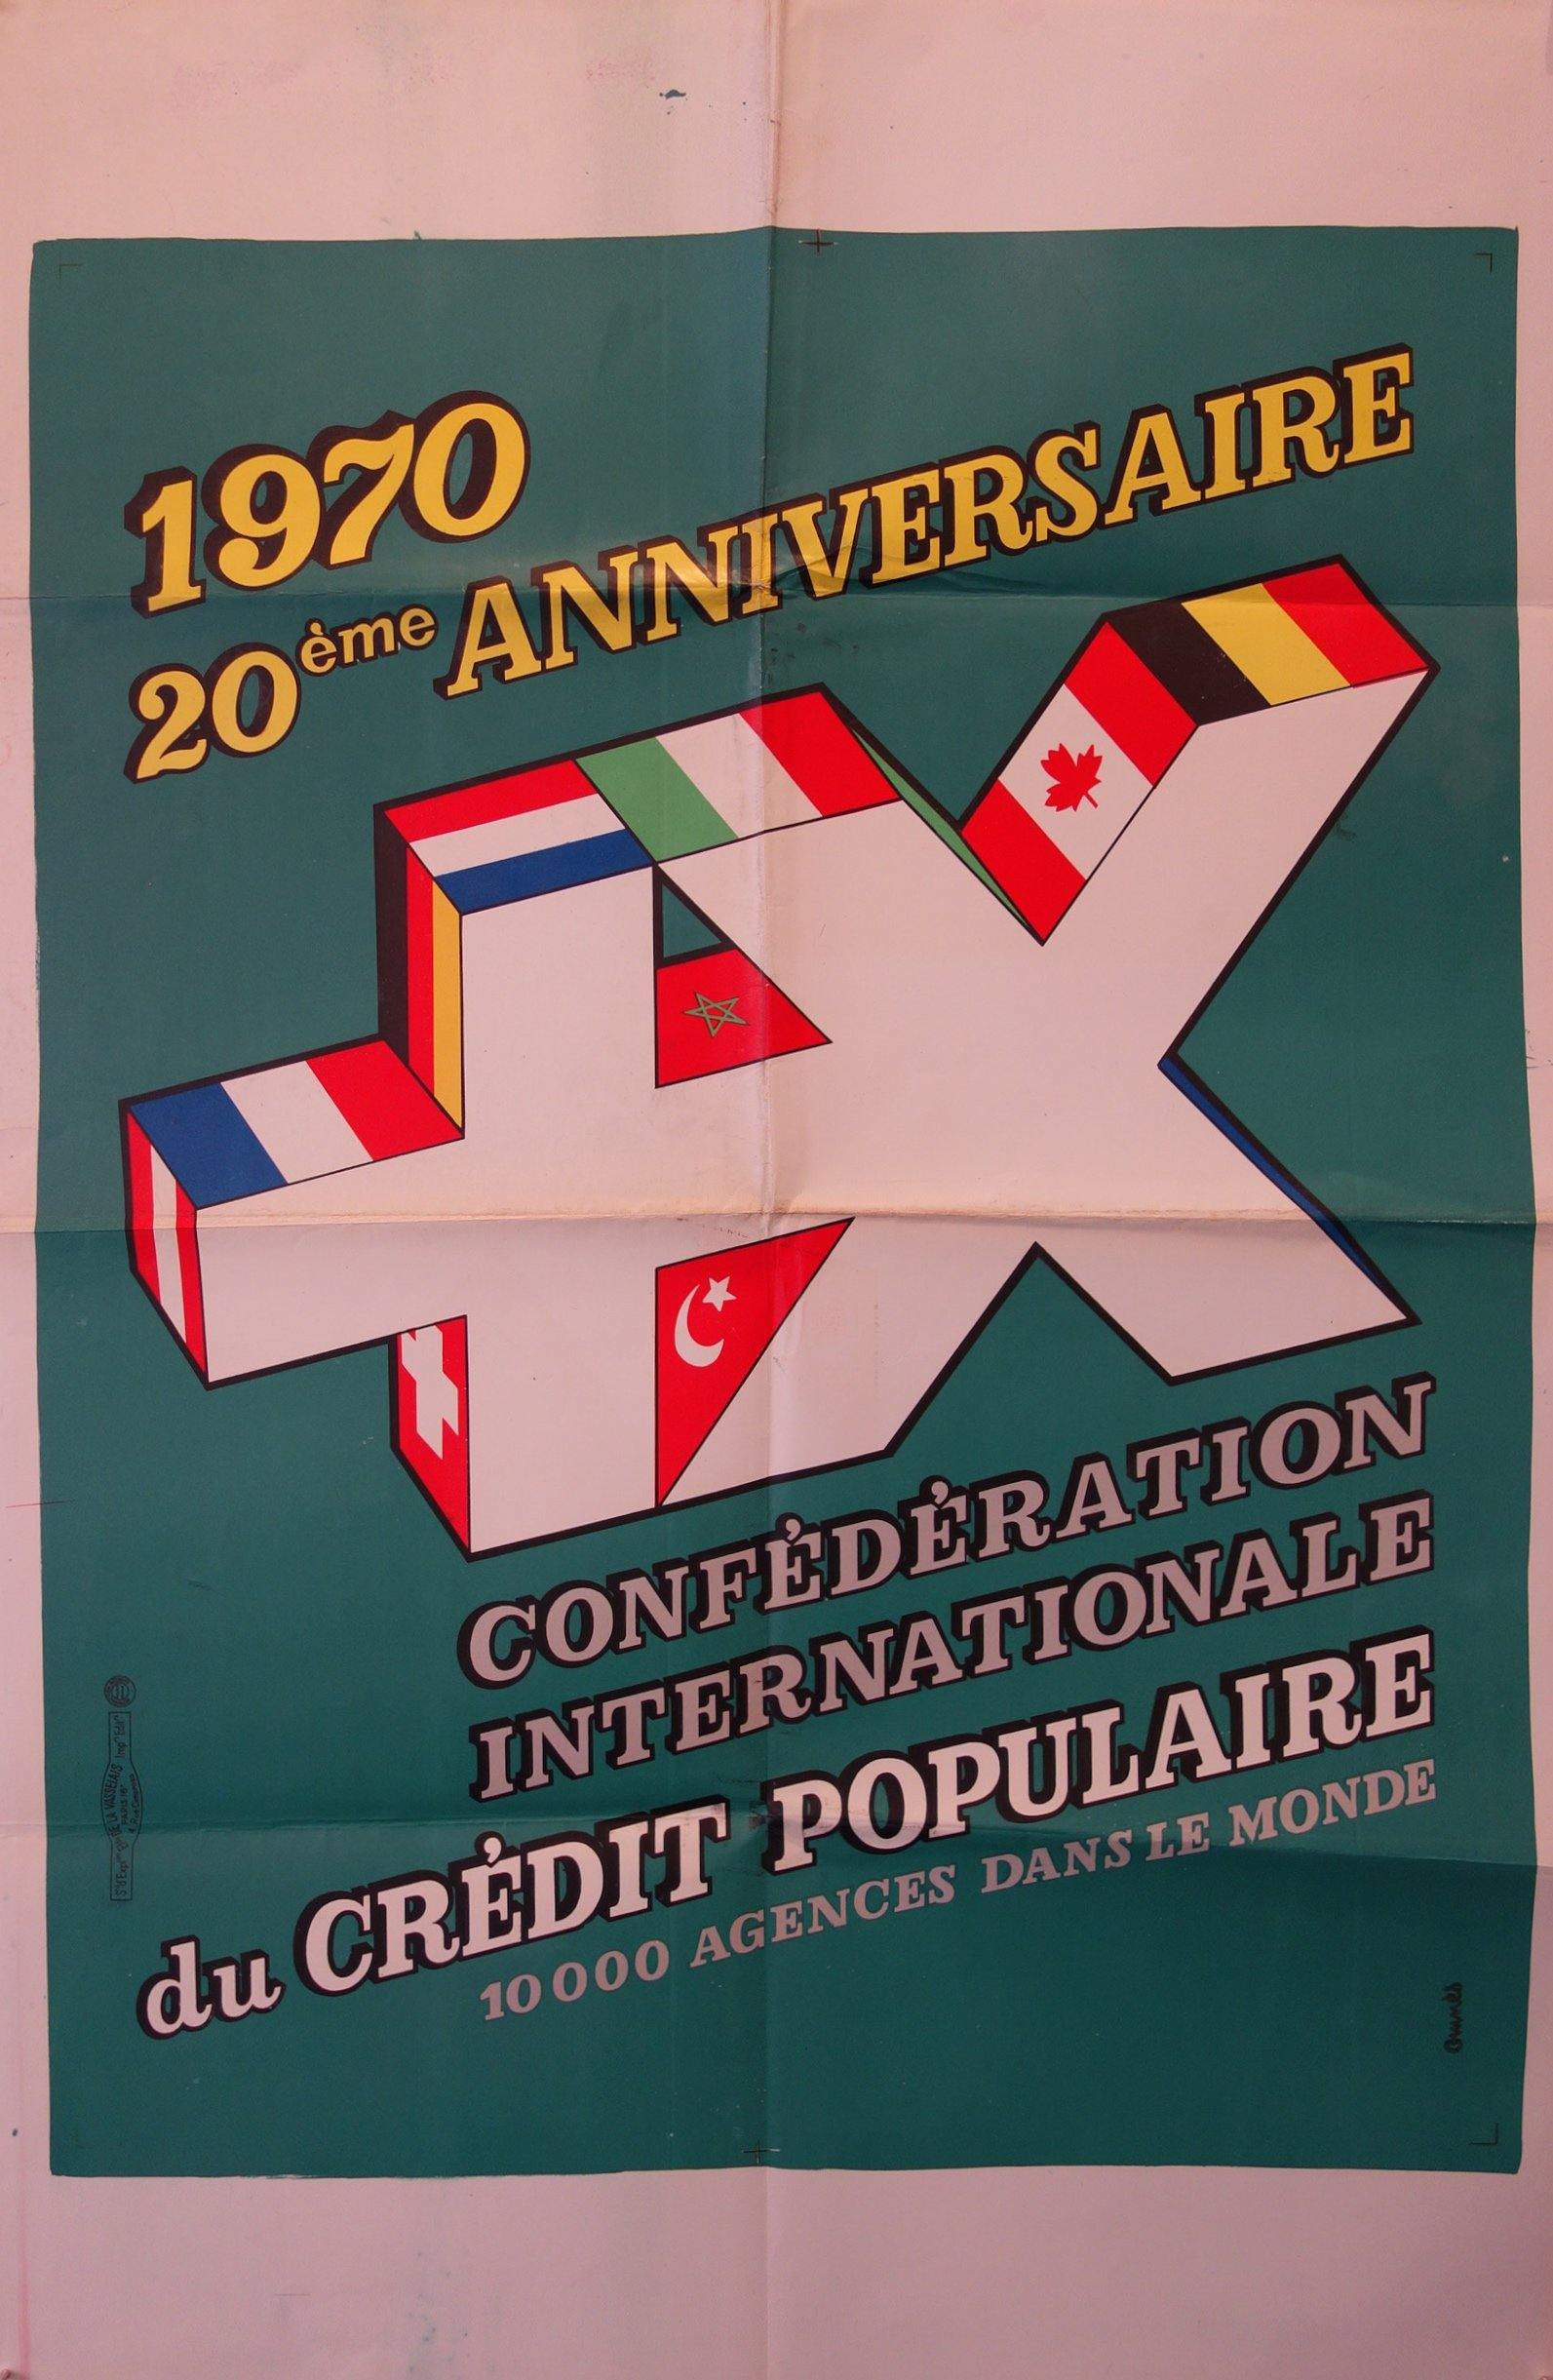 20th Anniversaire Confederation Internationale du Credit Populaire